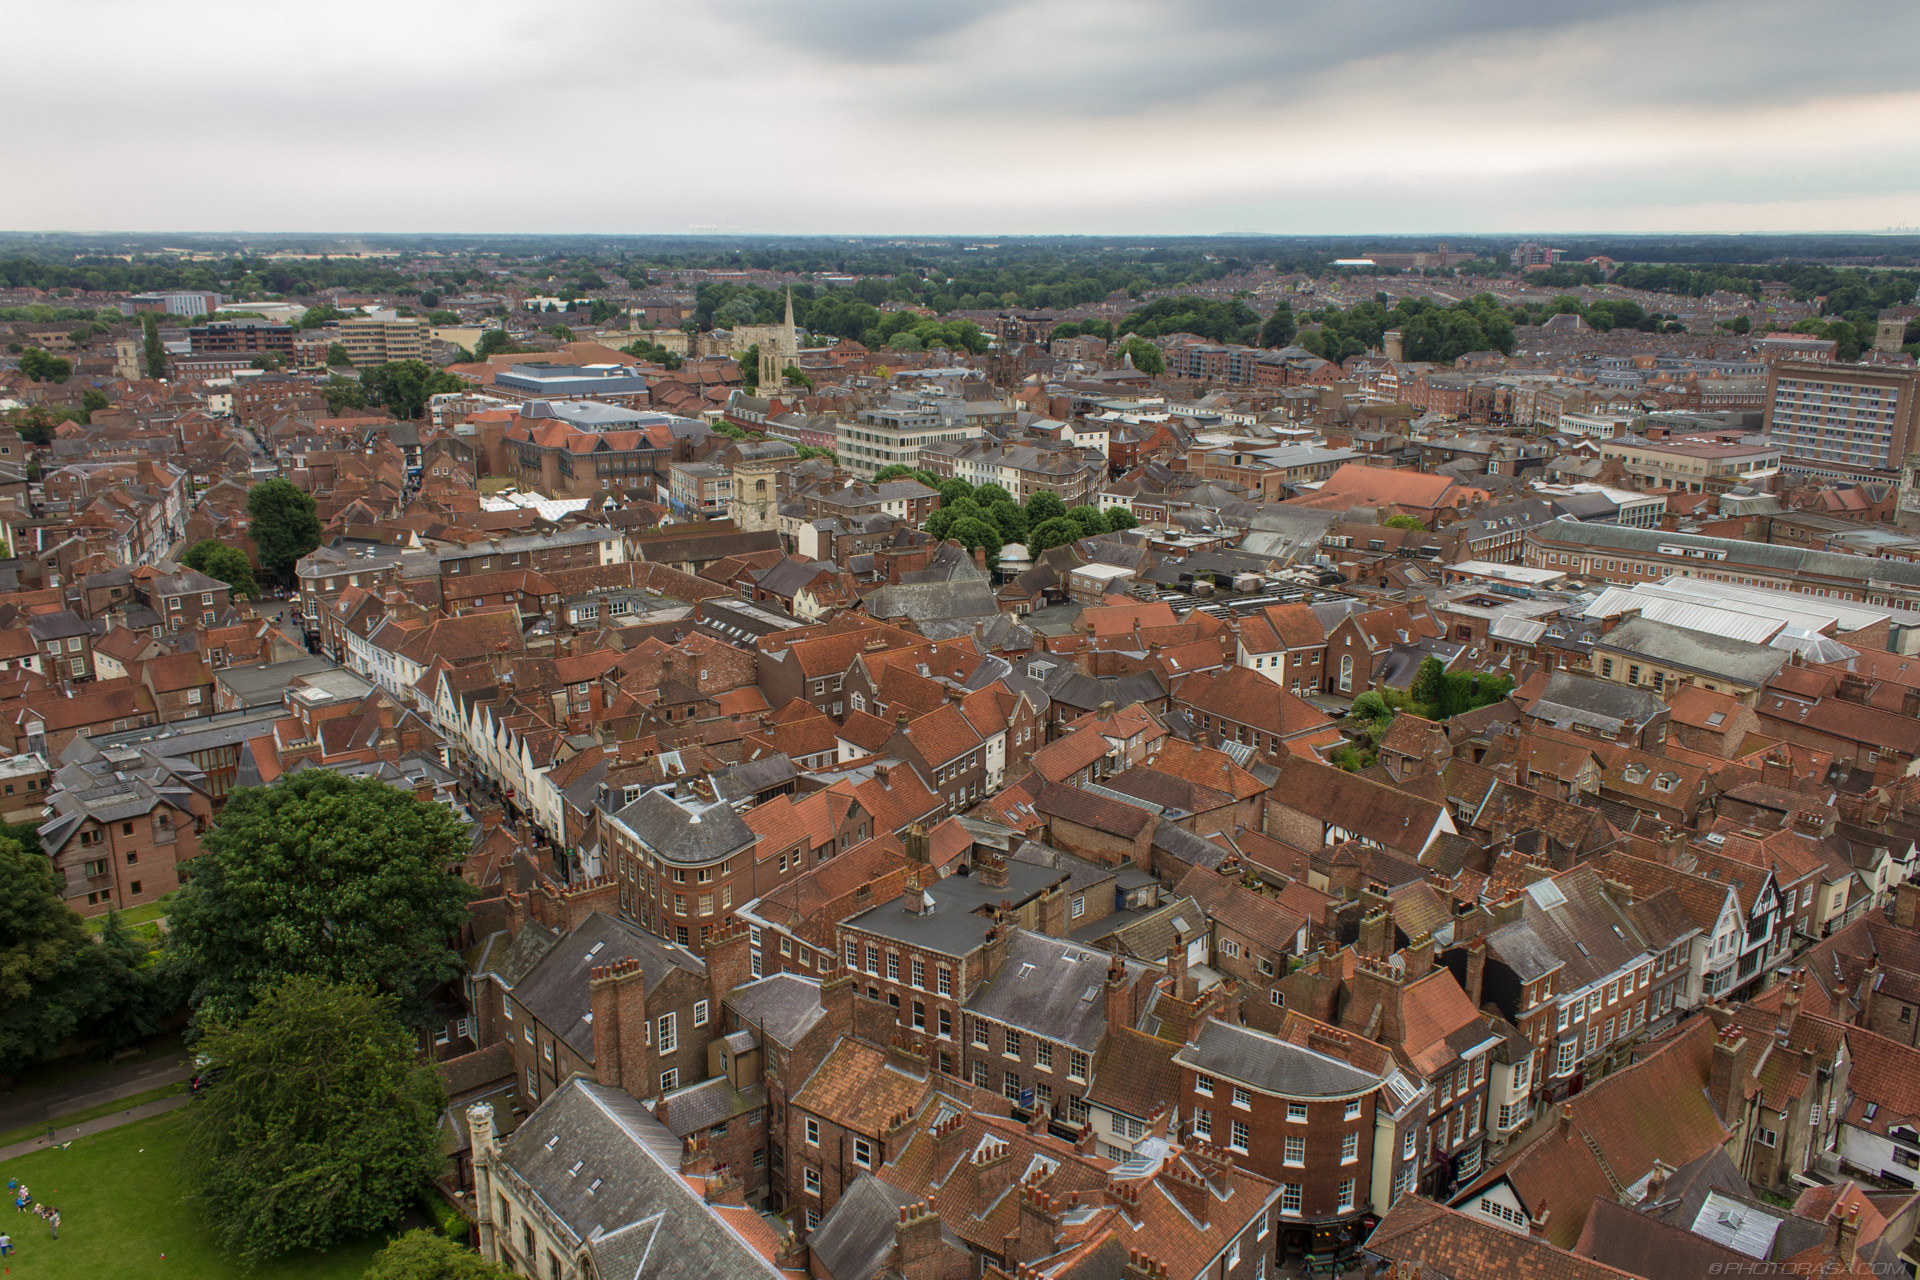 http://photorasa.com/yorkminster-cathedral/view-of-york-form-yorkminster-tower/